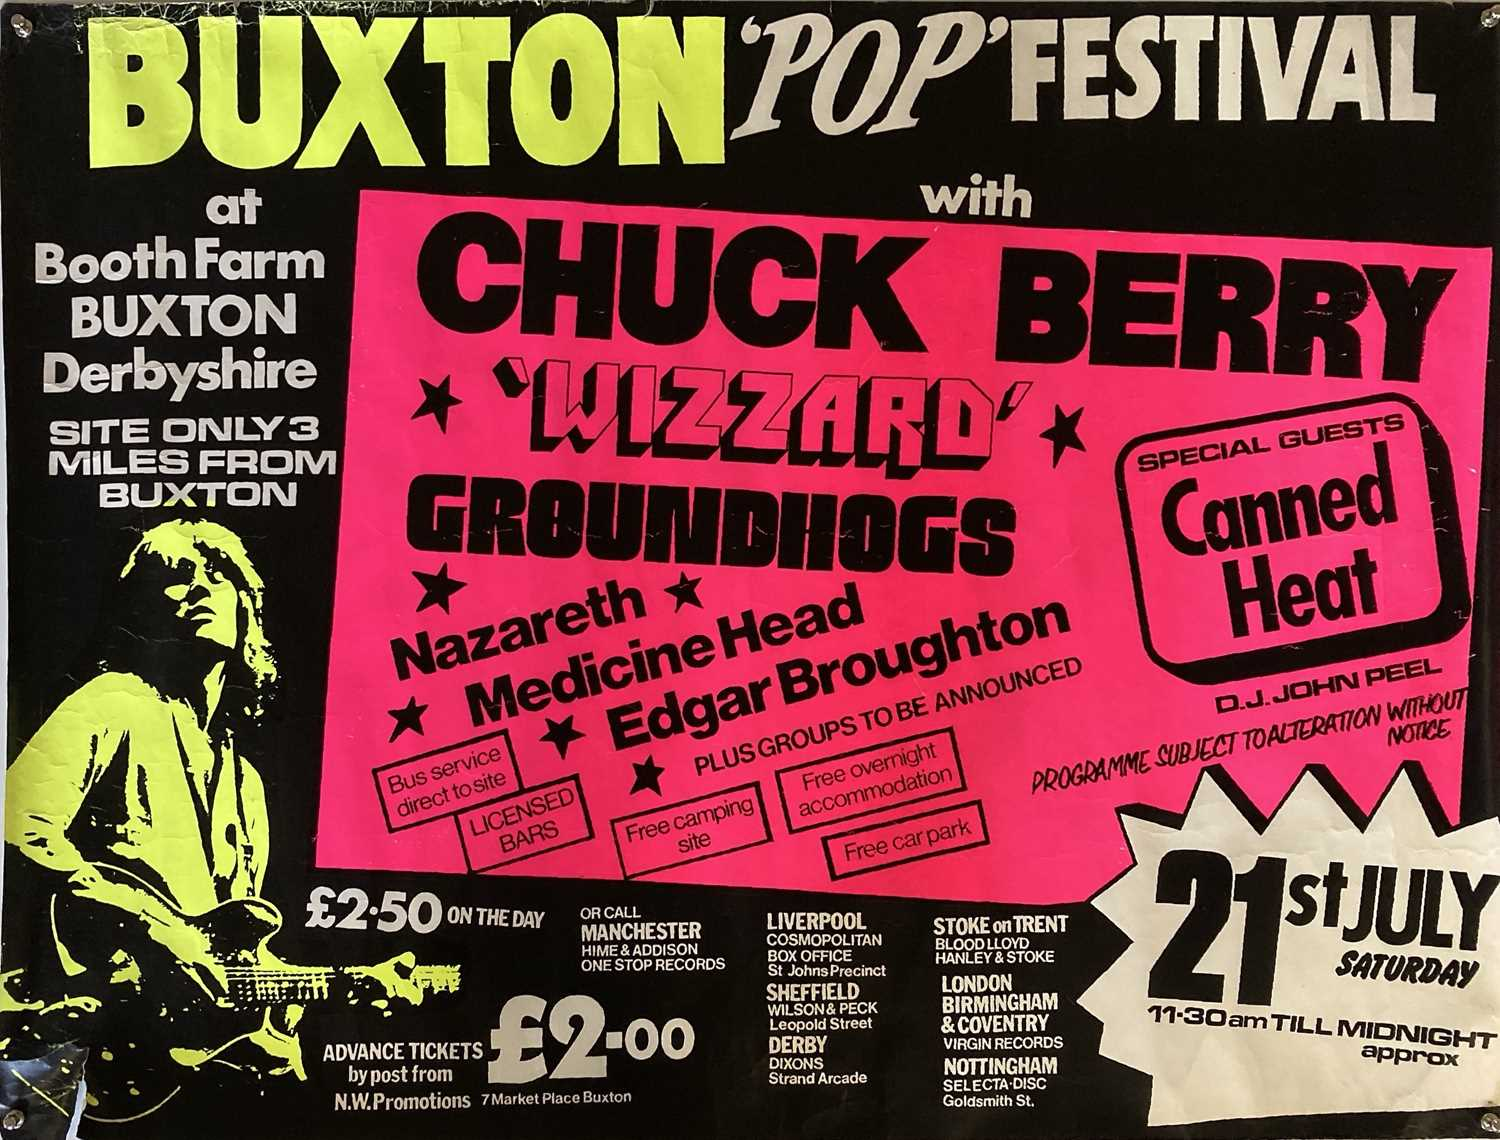 BUXTON FESTIVAL 1972 POSTER - CHUCK BERRY / CANNED HEAT.